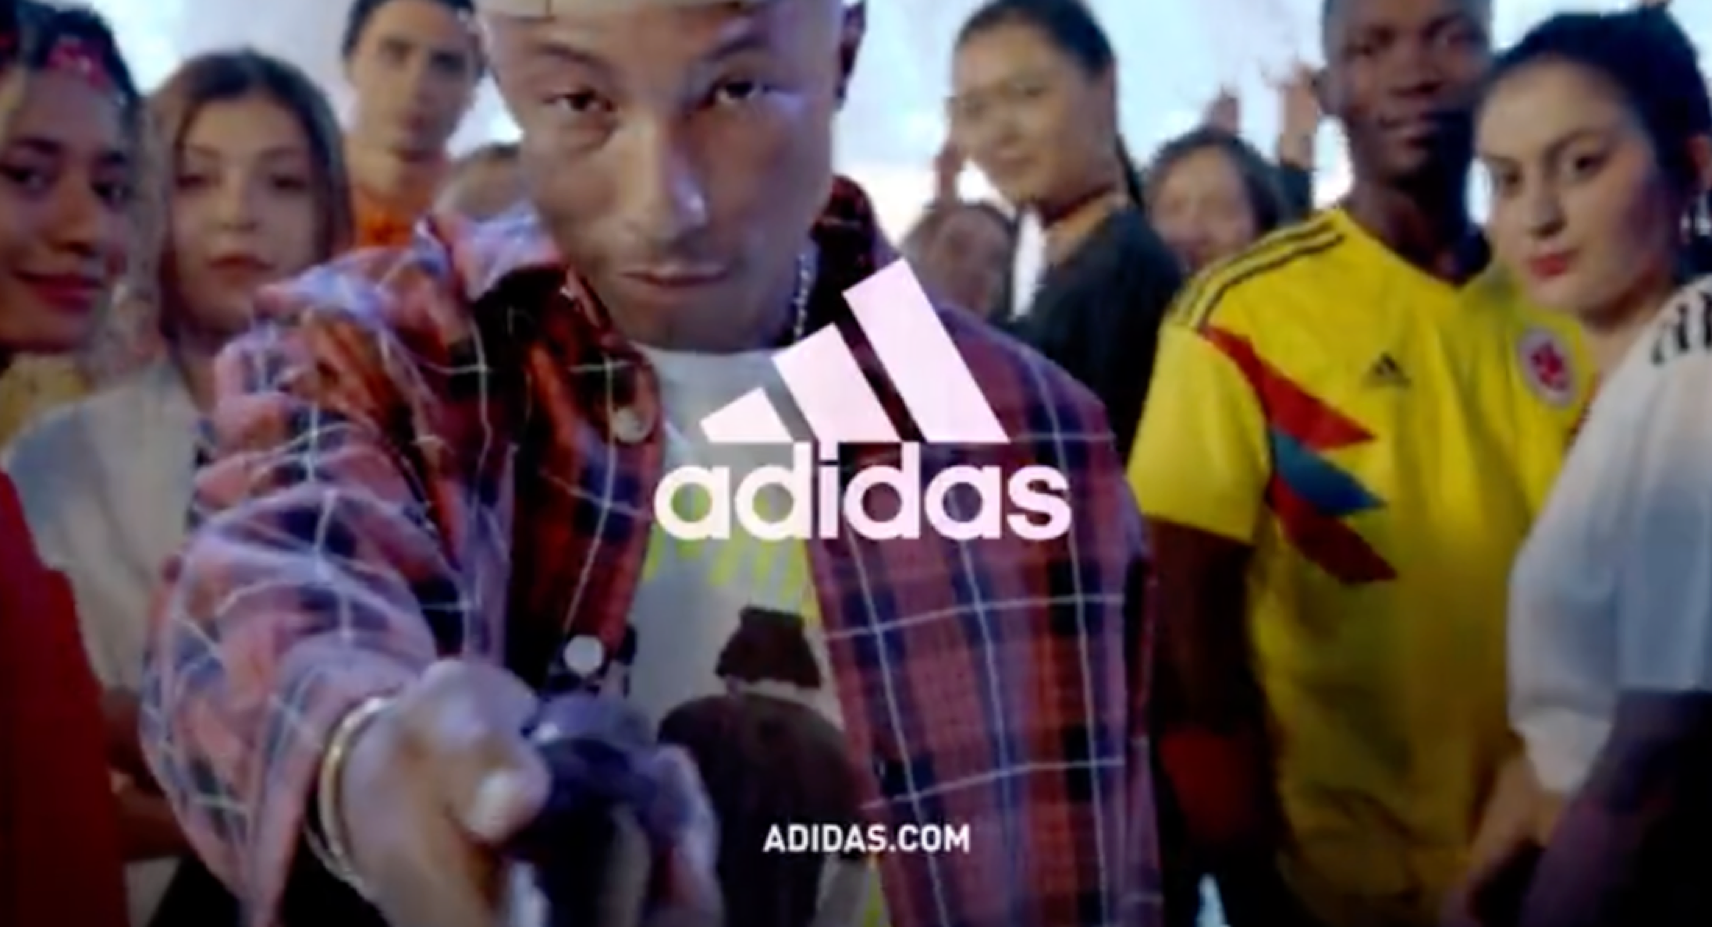 adidas_worldcup2018